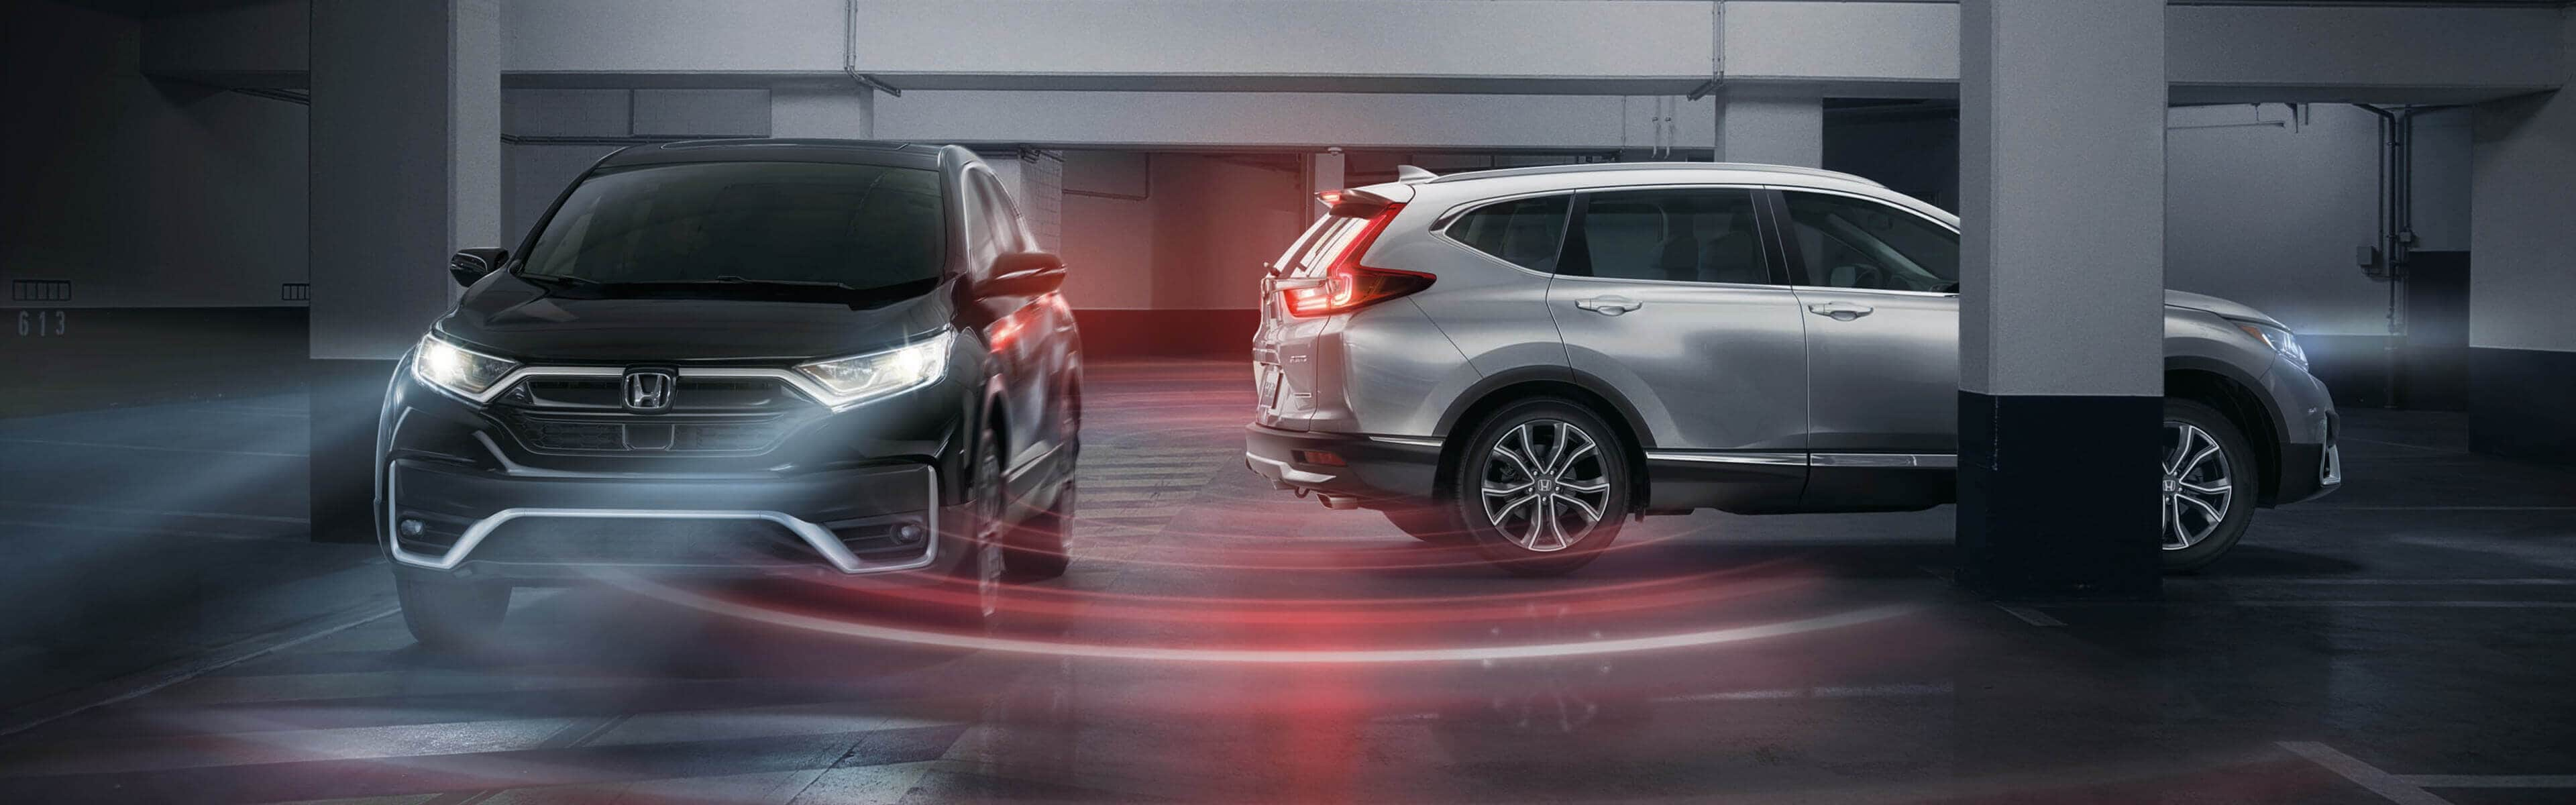 two Honda CR-Vs in a parking lot, avoiding a collision thanks to an animated expression of Honda Sensing technologies